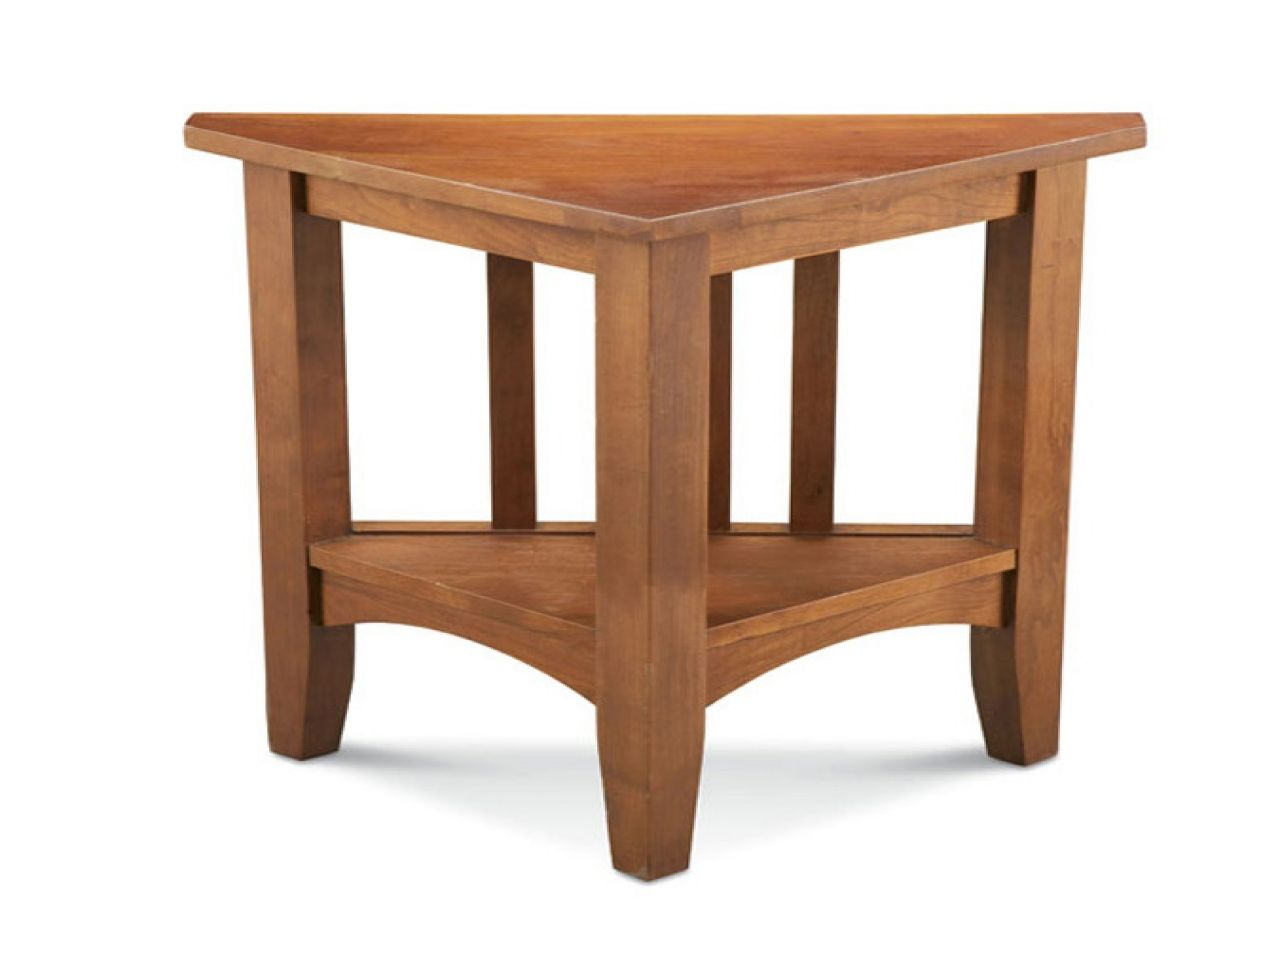 the super triangle shaped end table jockboymusic dining room accent tables bar height home zone furniture wood small block chevy single turbo kit pomona rustic natural unfinished